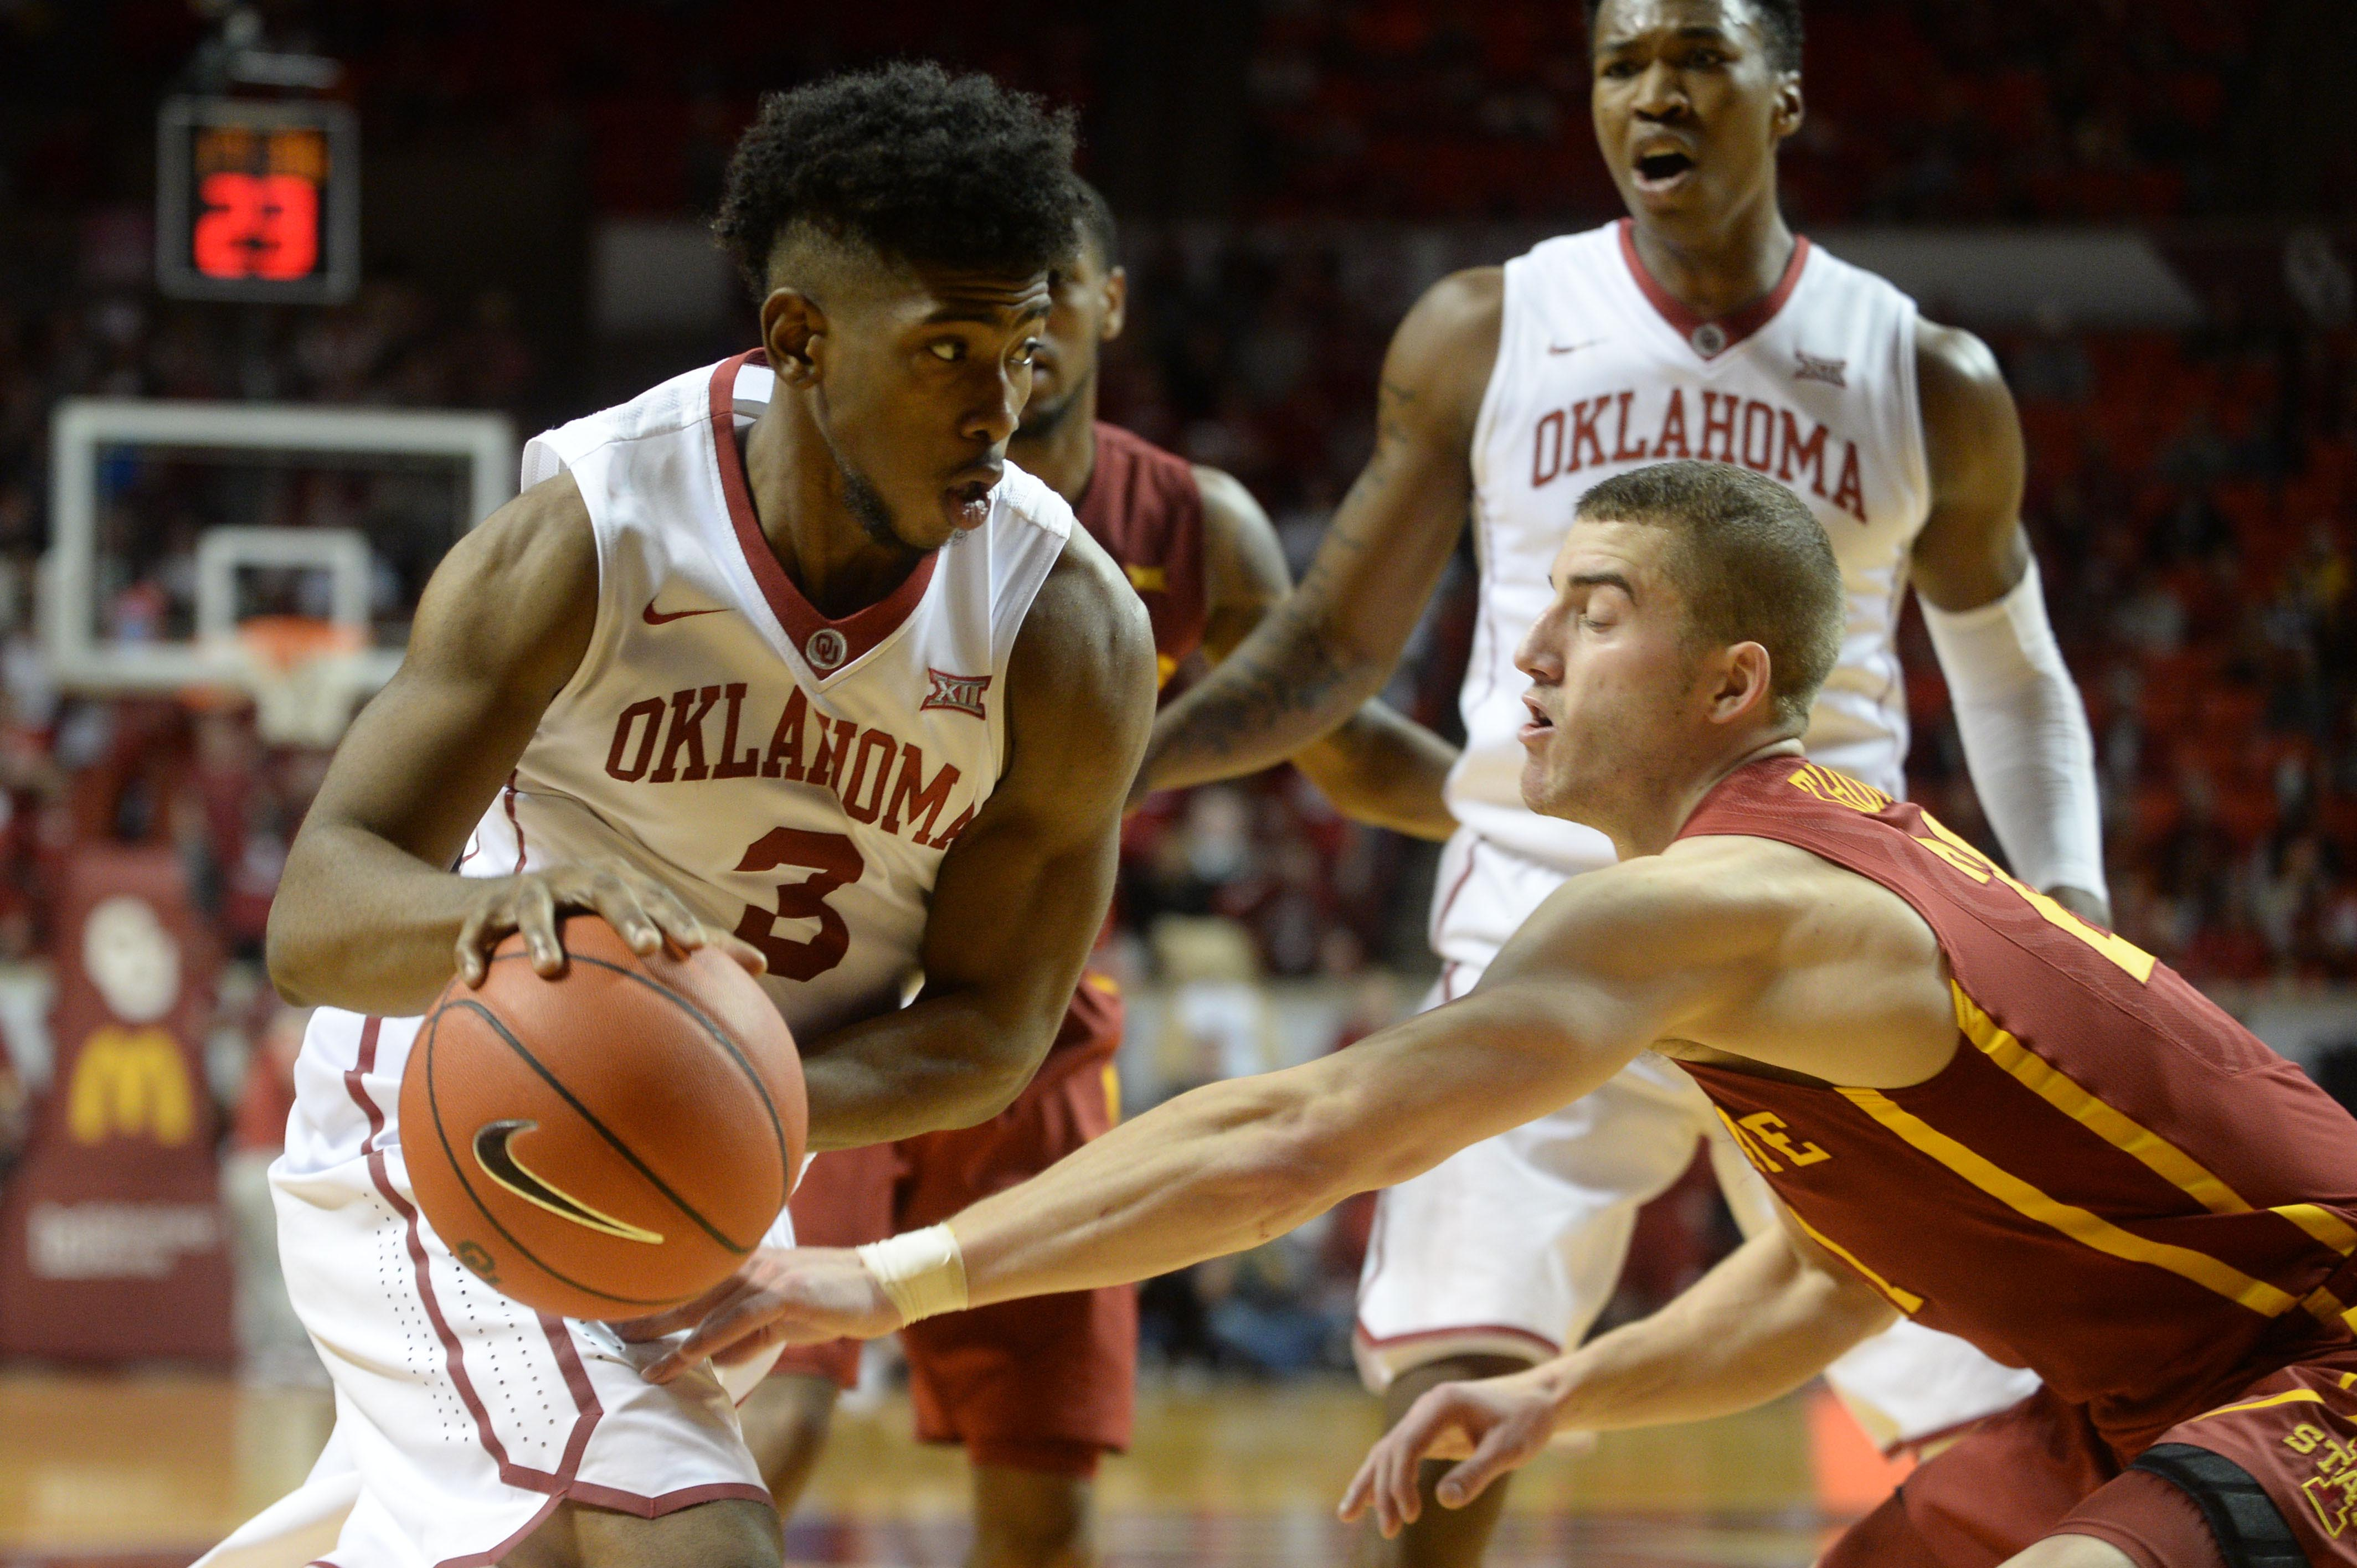 Ou vs iowa state notable numbers from a heartbreaking defeat the number 25 was the defining difference in the oklahoma vs iowa state big 12 contest on saturday publicscrutiny Images